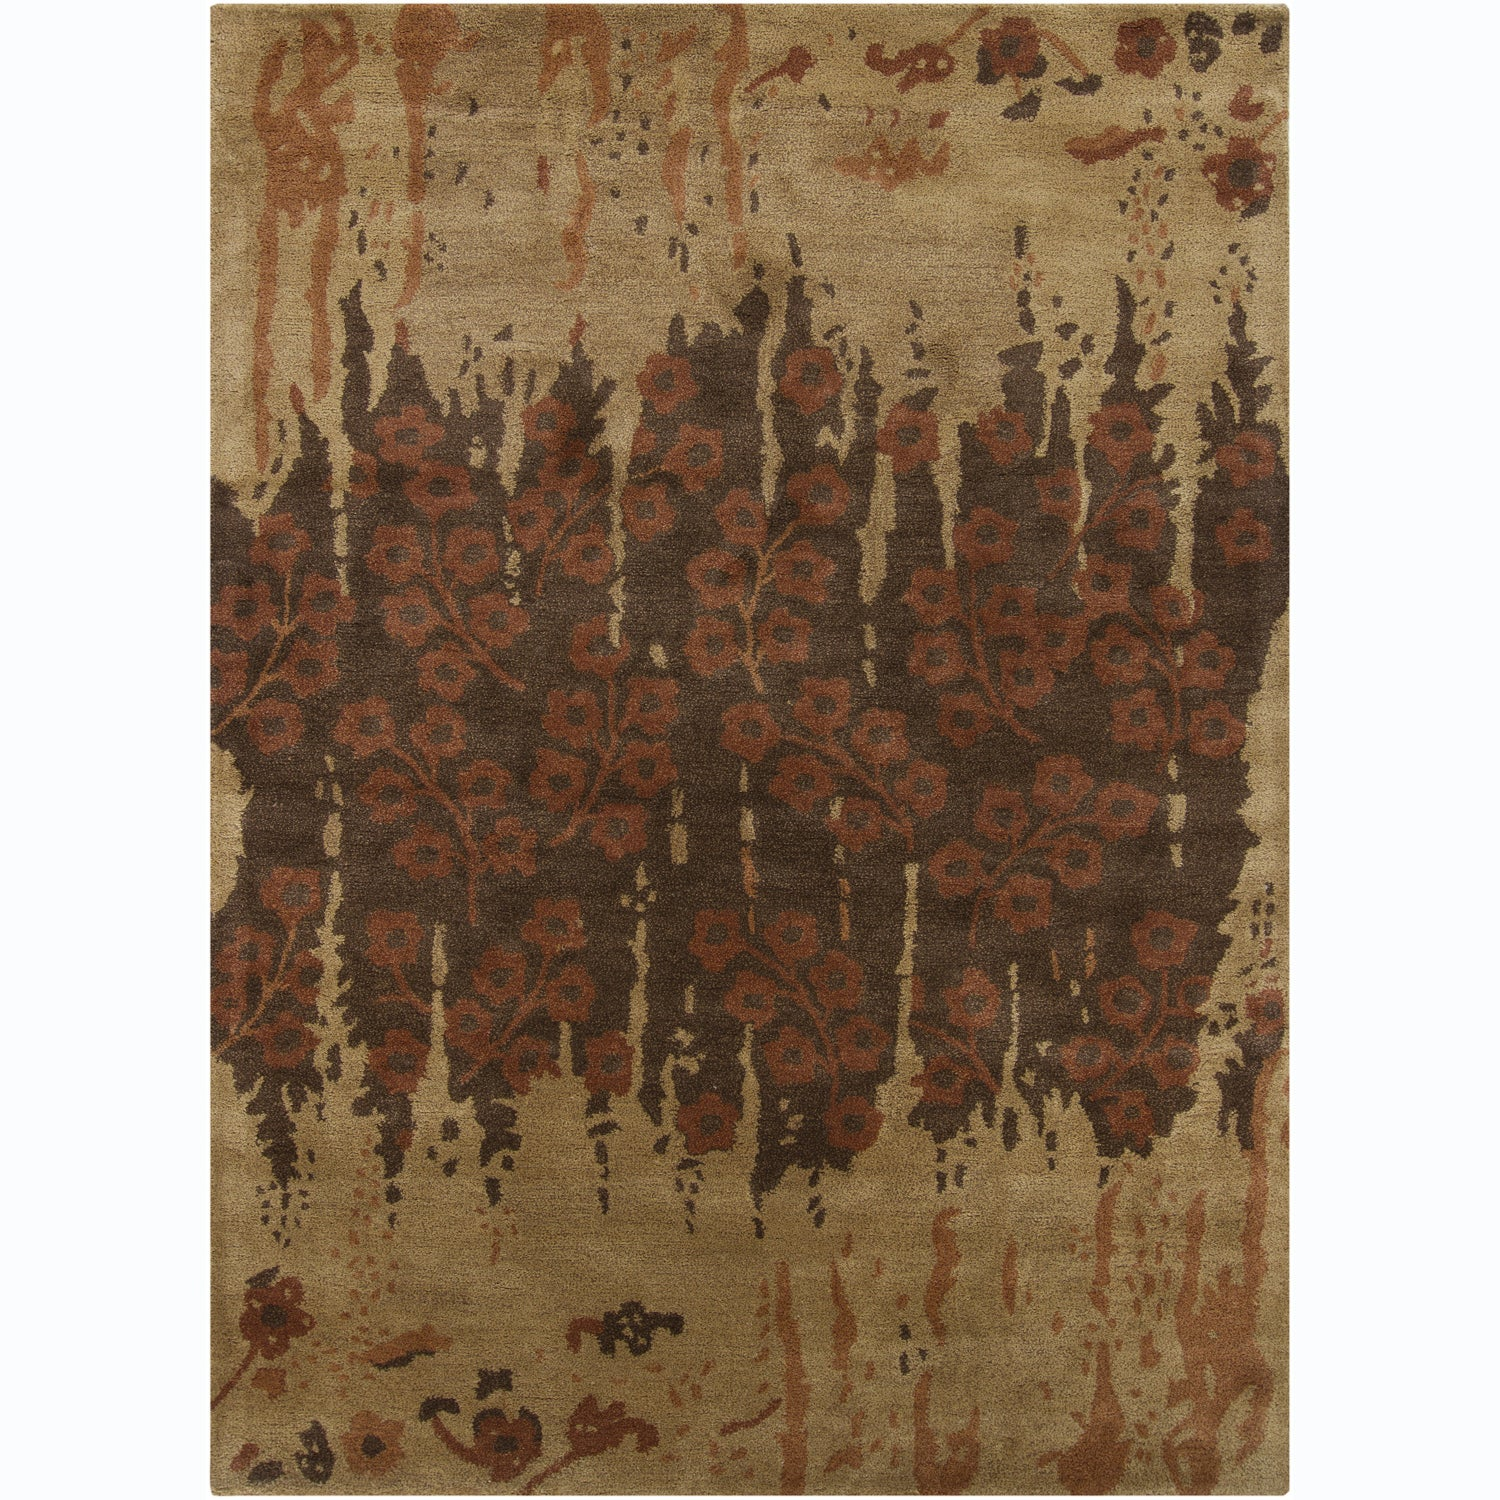 Artist's Loom Hand-tufted Transitional Floral Wool Rug - 7' x 10'